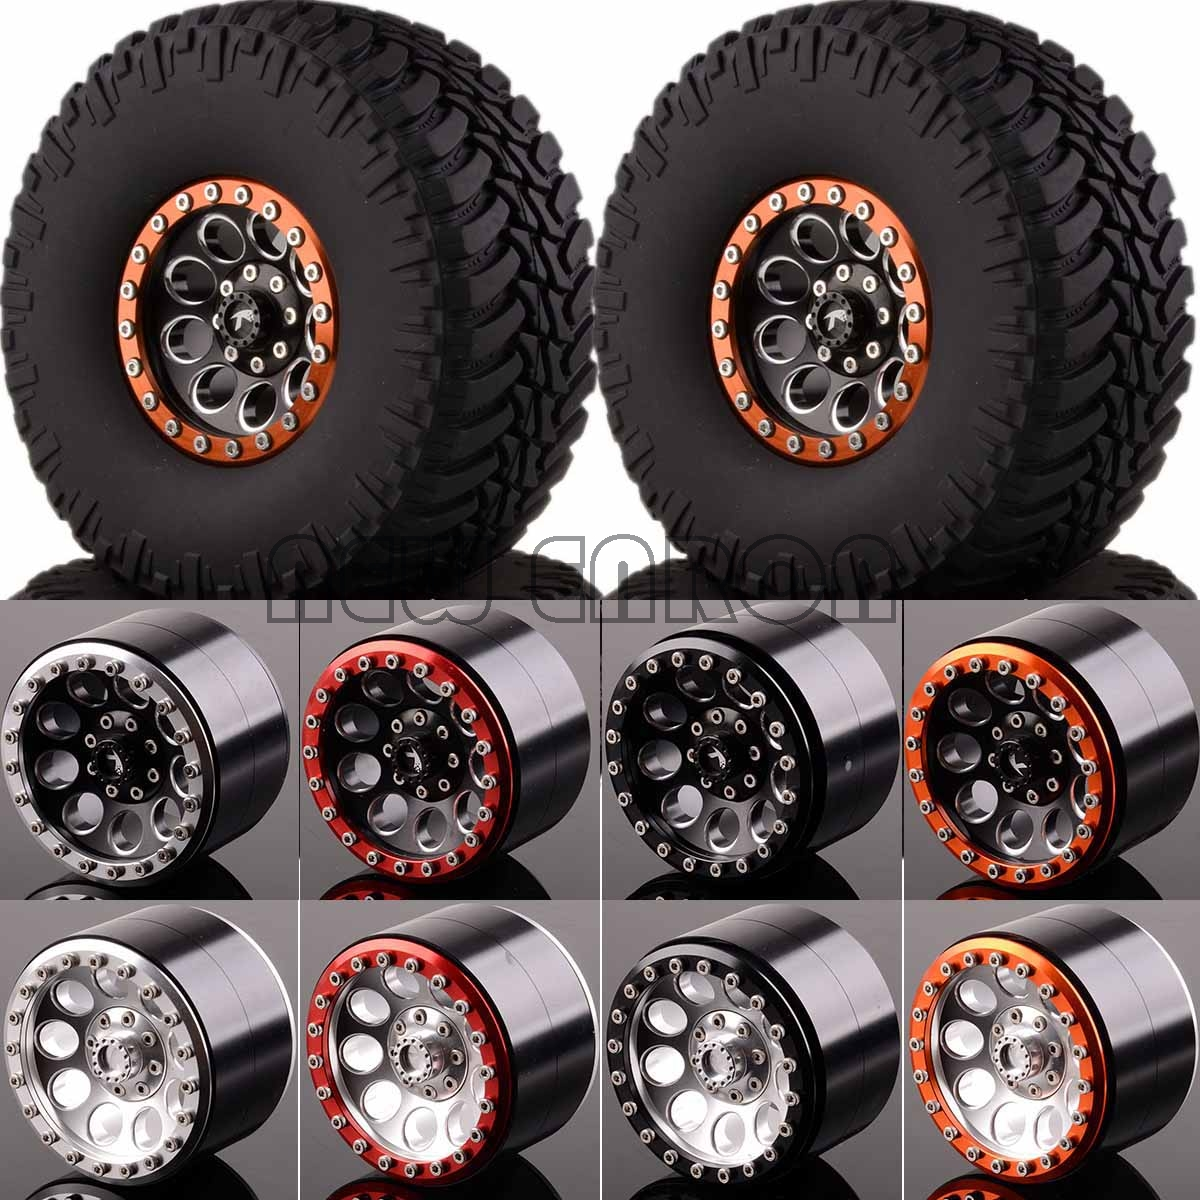 NEW ENRON 1:10 RC CAR 2.2 Beadlock Wheels & Tires 2020-3033 FOR 1/10 Crawler AXIAL Traxxas Tamiya HPI 2pcs 2 2 metal wheel hubs for 1 10 scale rc crawler car nv widen version outer beadlock wheels diameter 64 5mm width 43 5mm